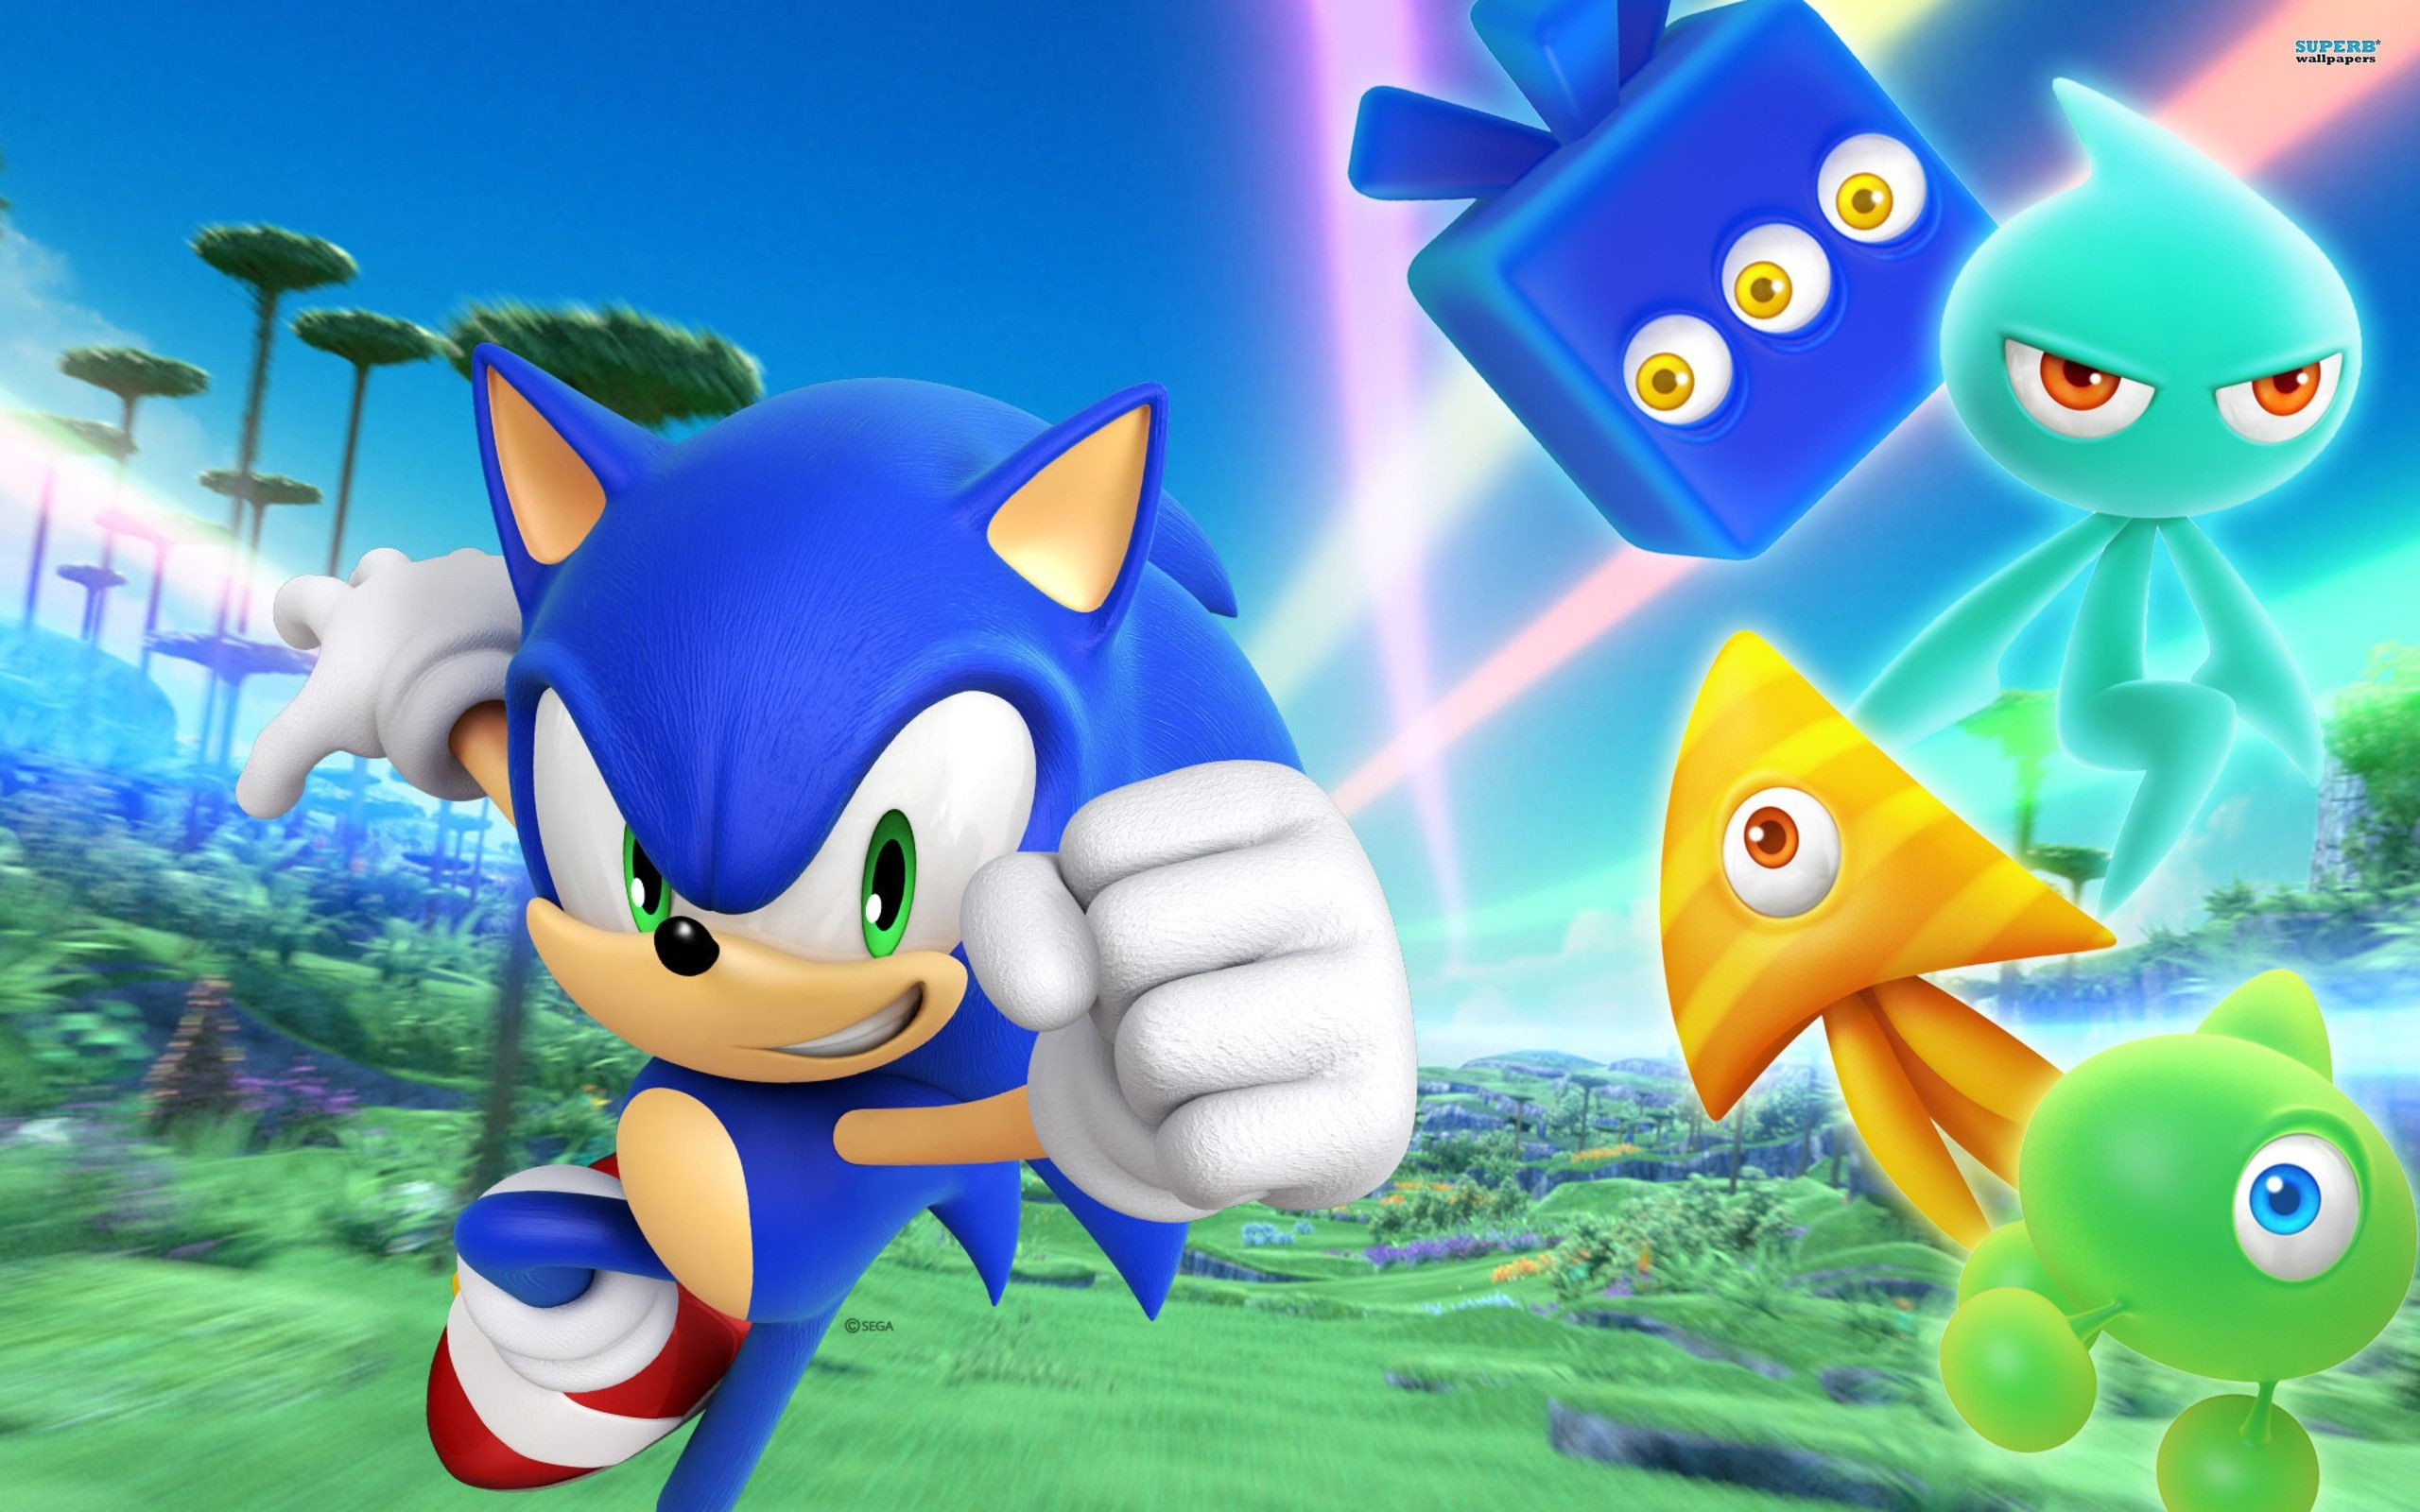 Sonic The Hedgehog Wallpaper 2018 66 Pictures